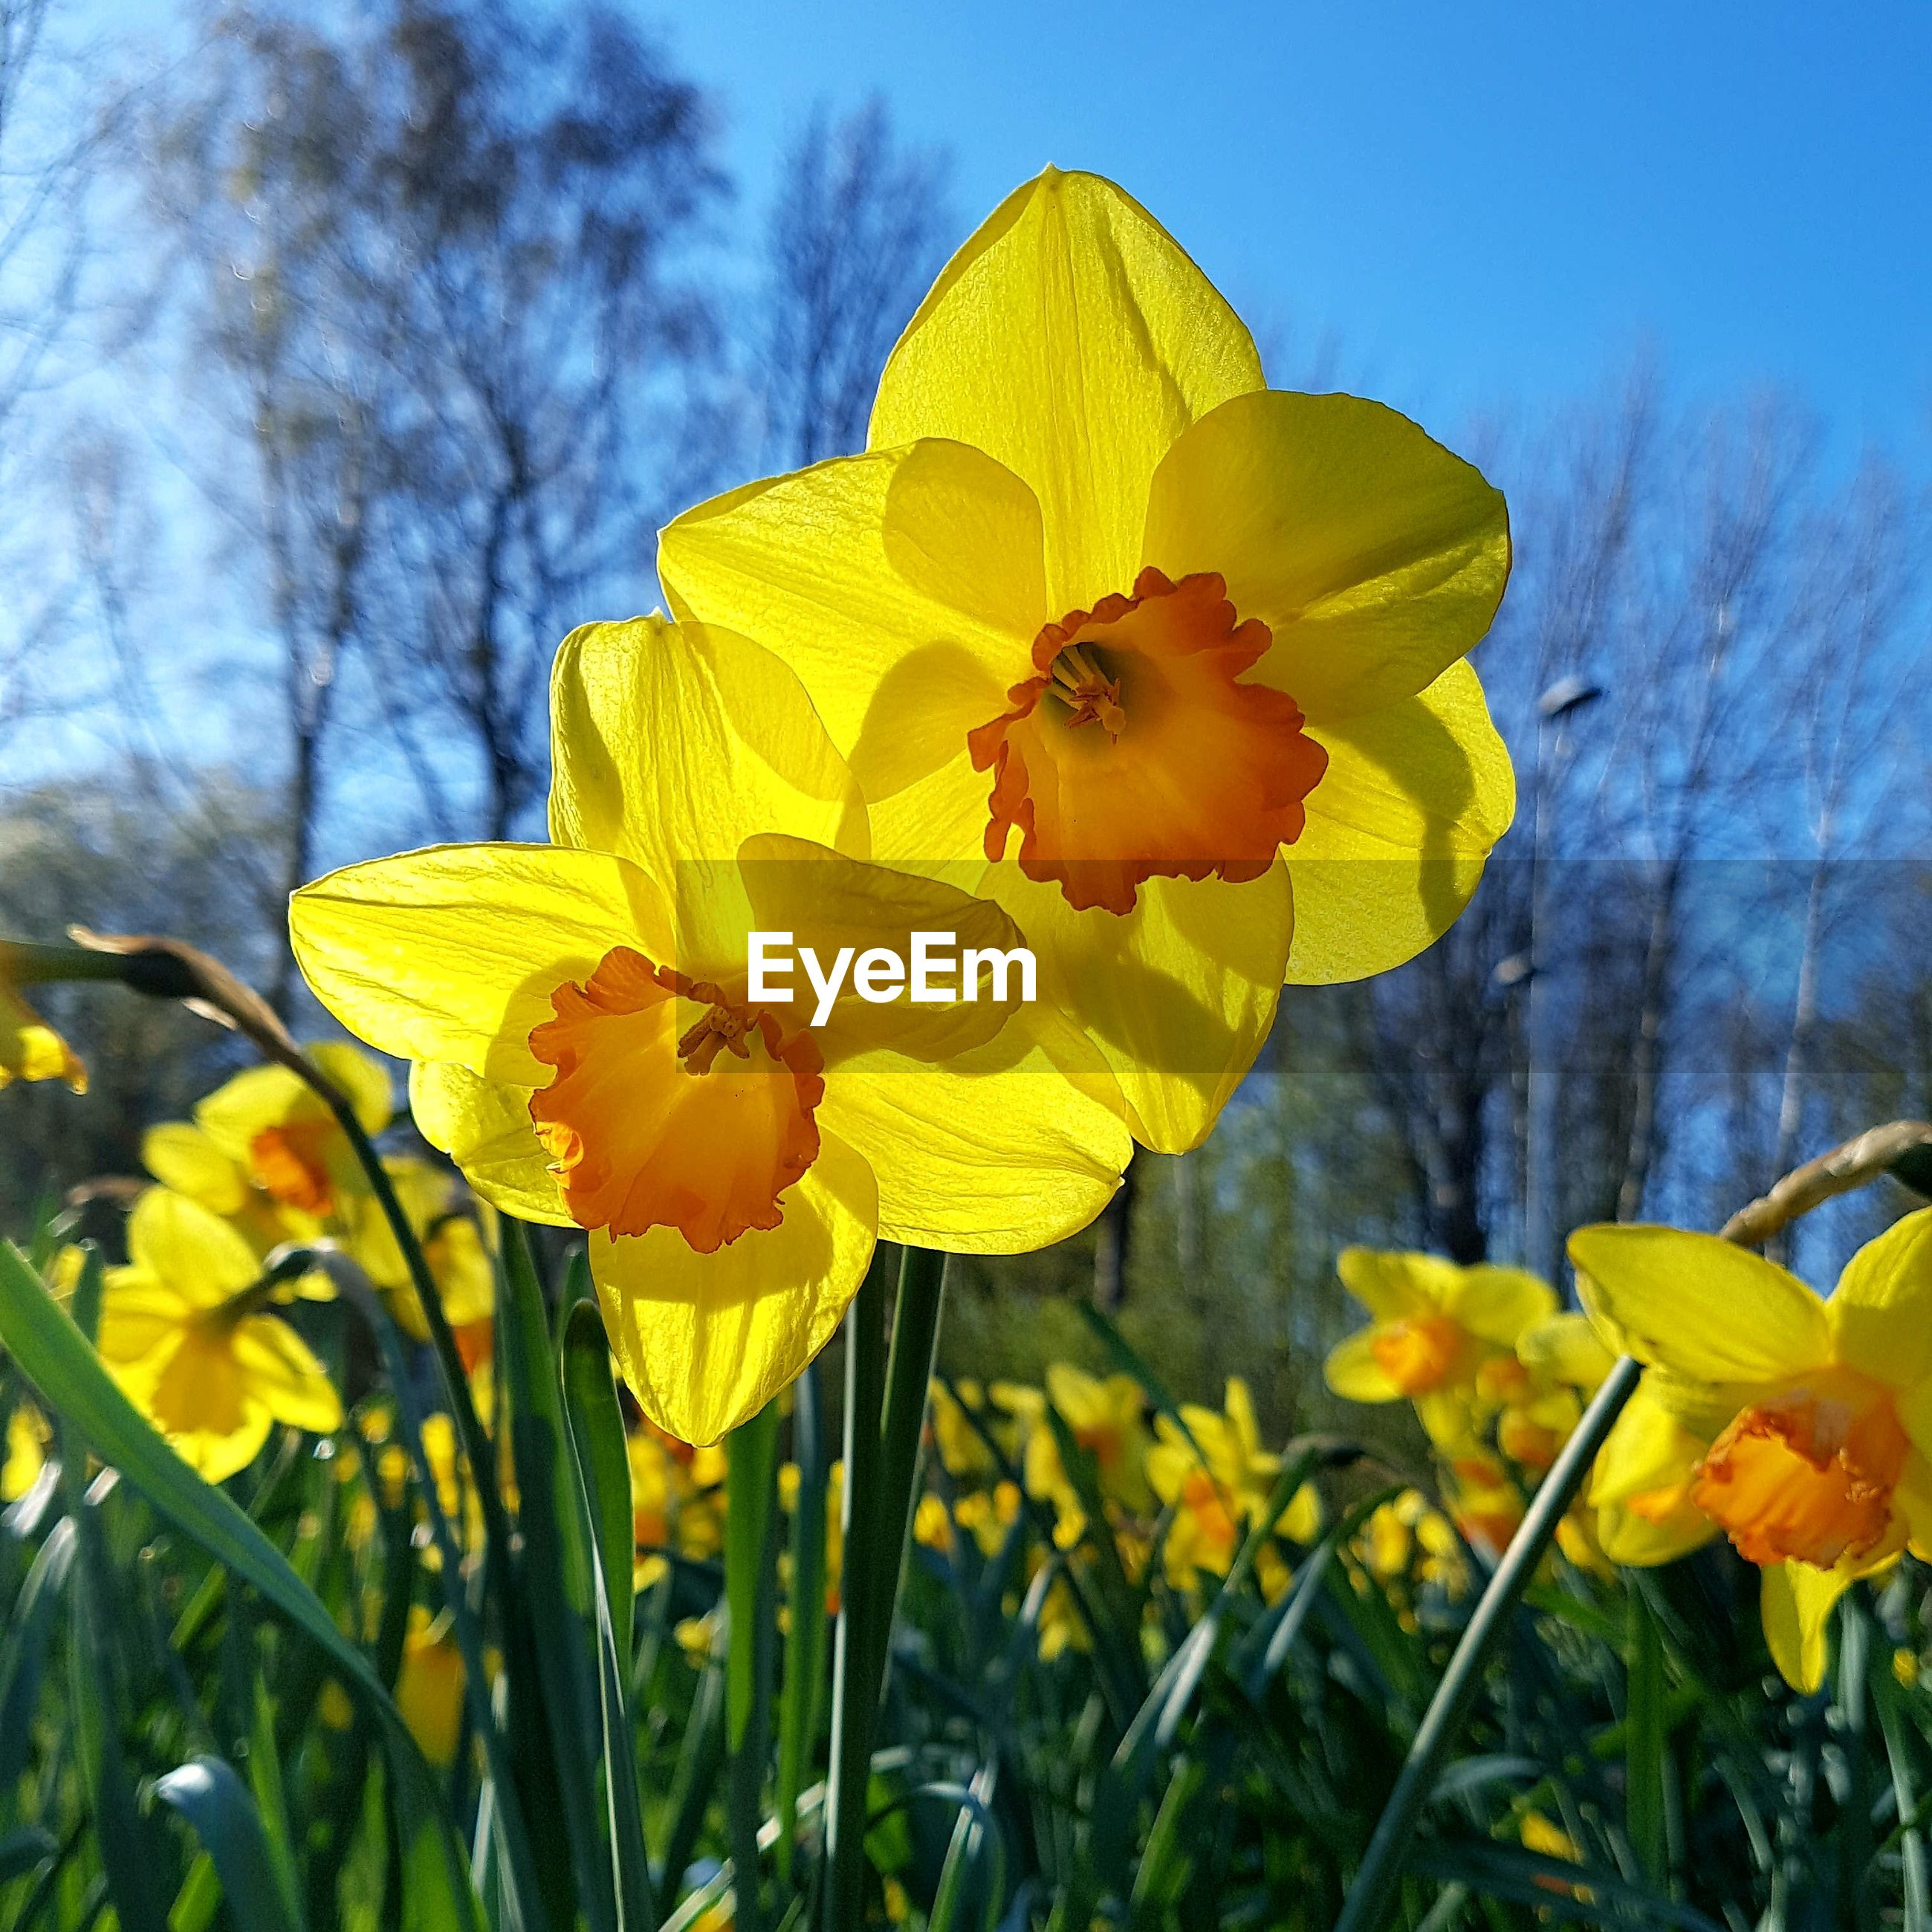 CLOSE-UP OF YELLOW CROCUS BLOOMING IN FIELD